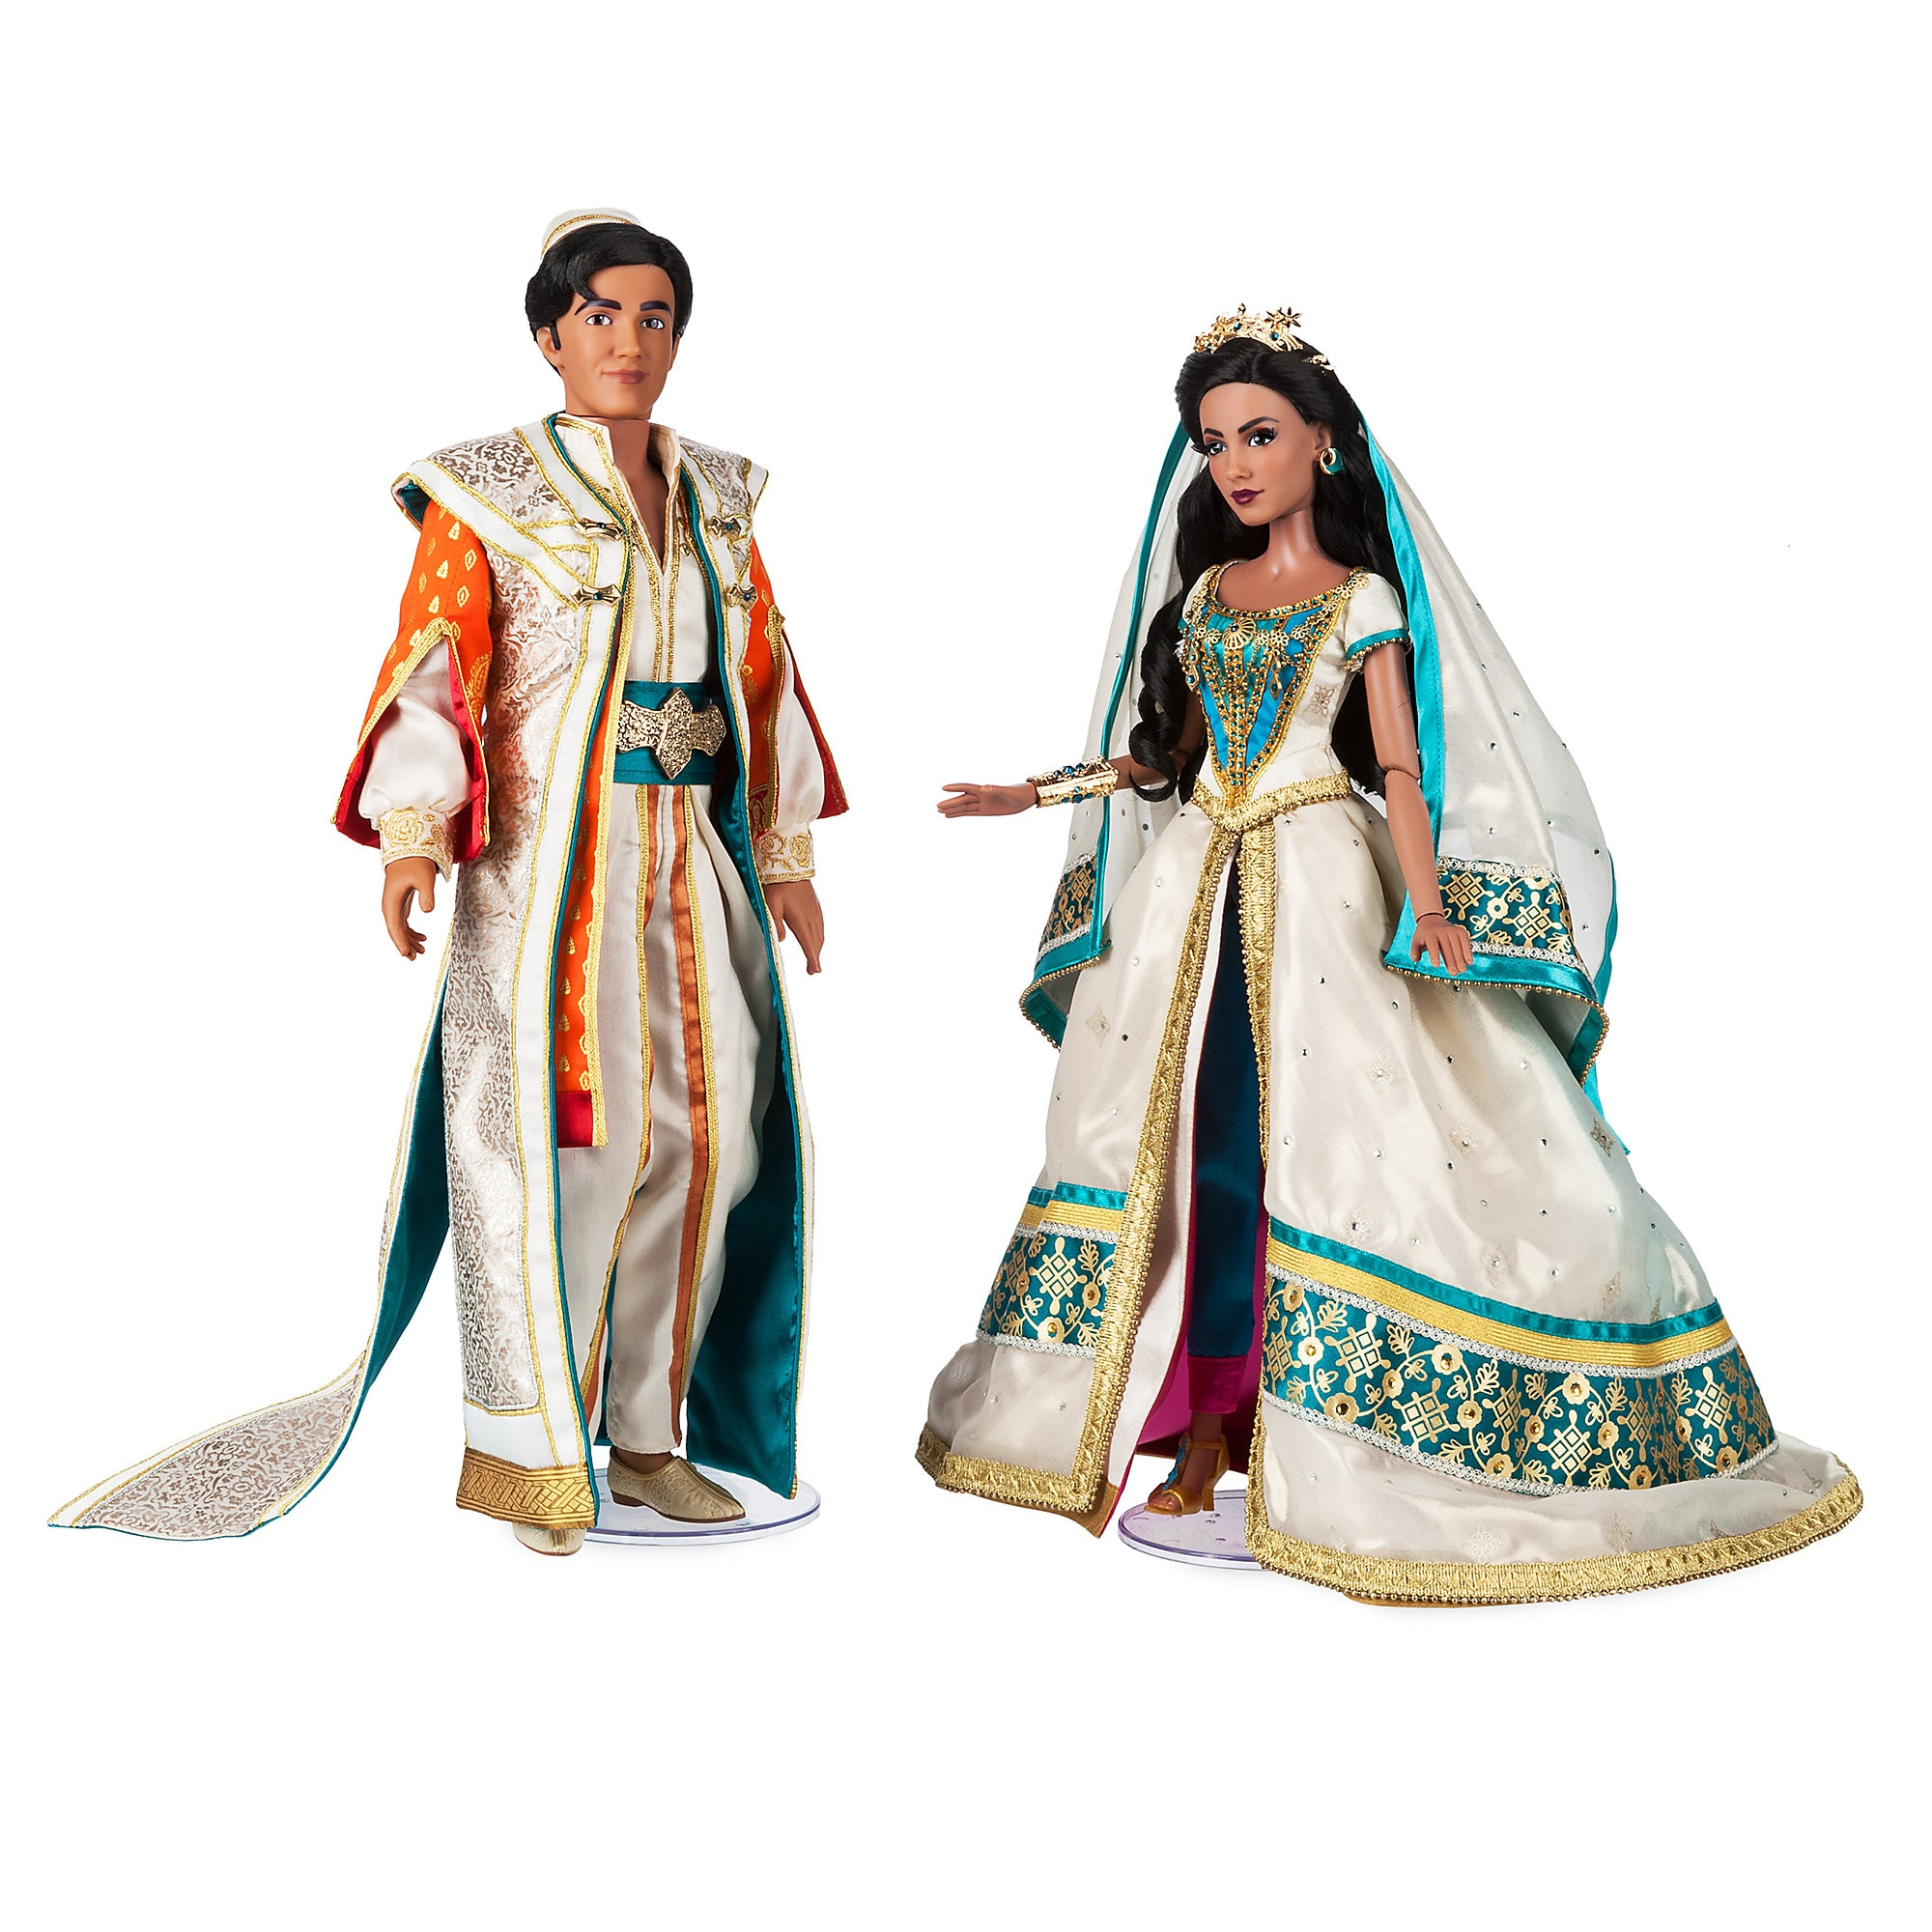 Wedding In White Film: Jasmine And Aladdin Limited Edition Doll Set